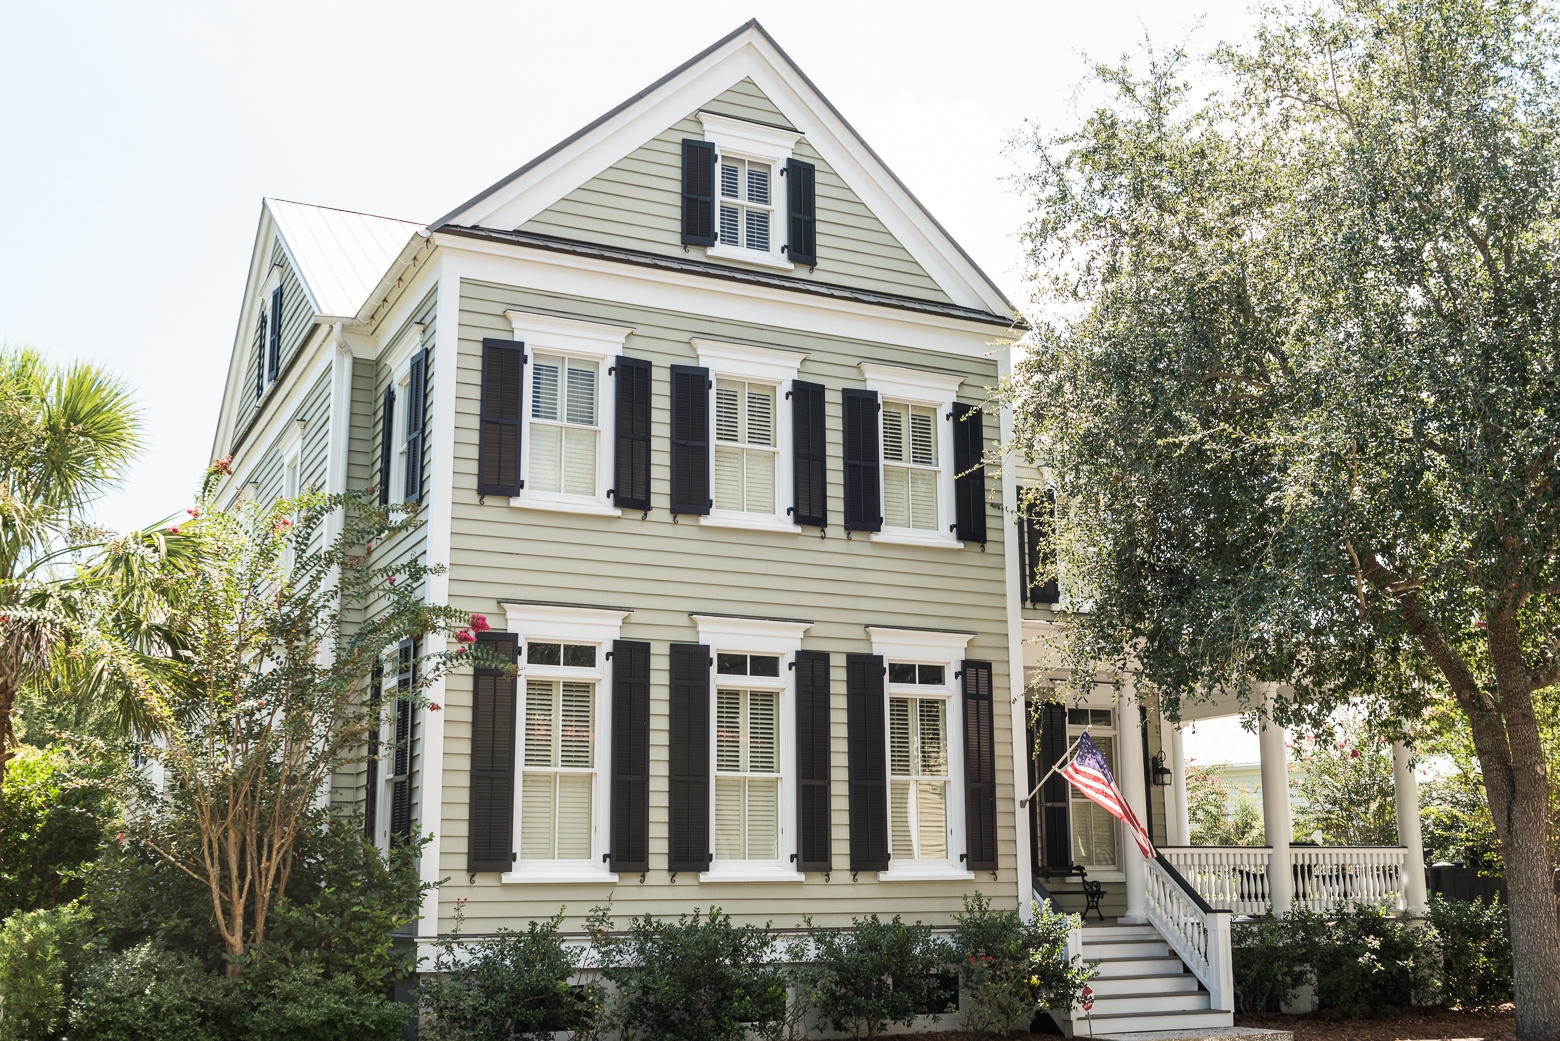 Photo of 19 Perseverance St, Mt Pleasant, SC 29464